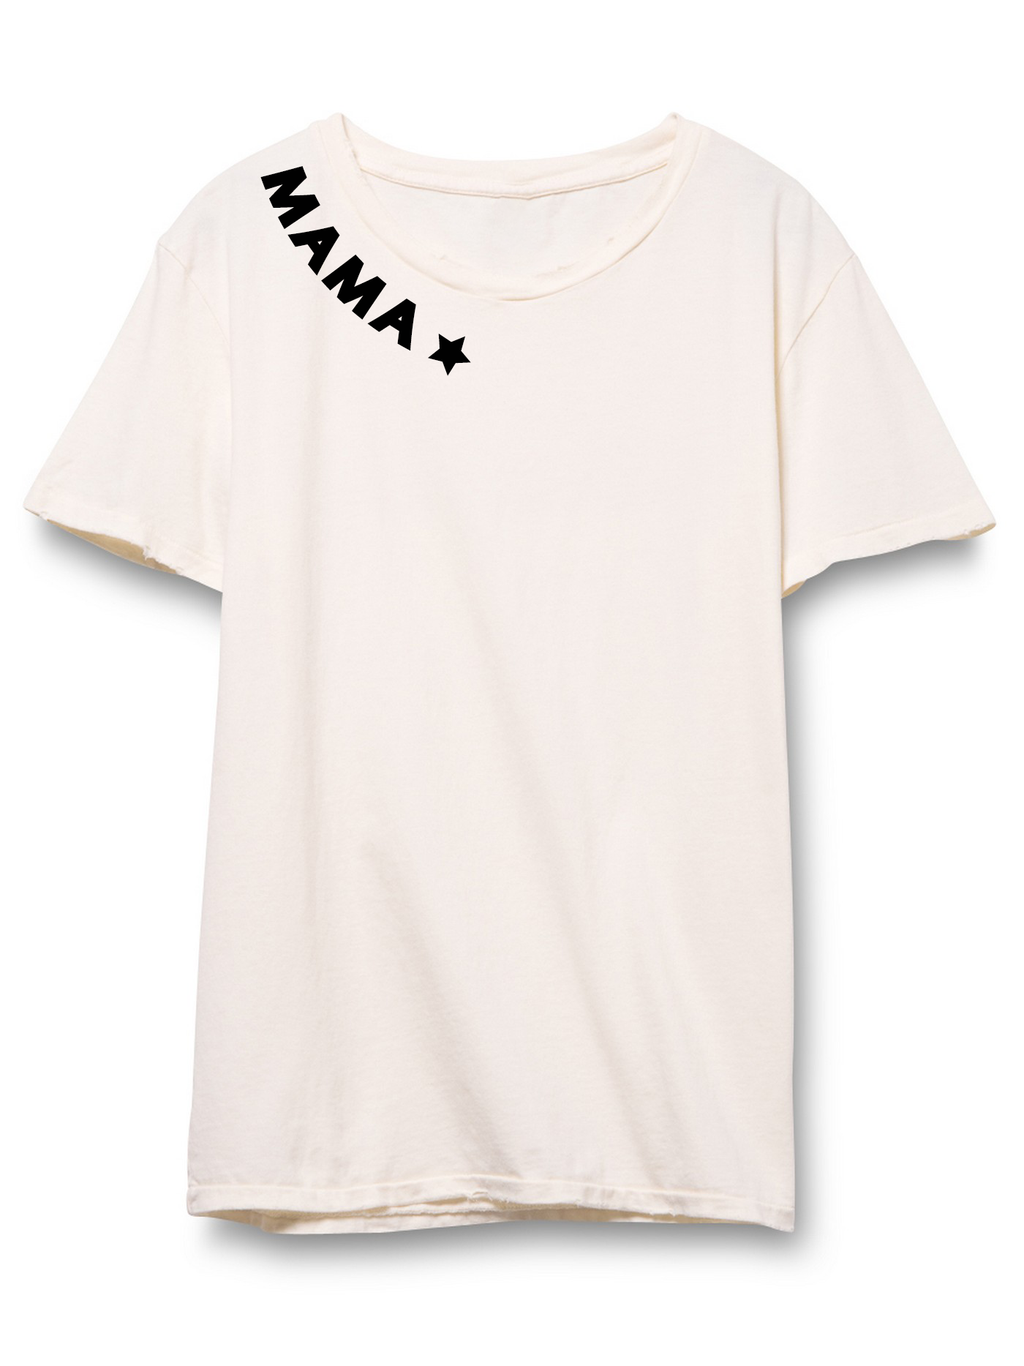 Mama Distressed Short Sleeve Tee